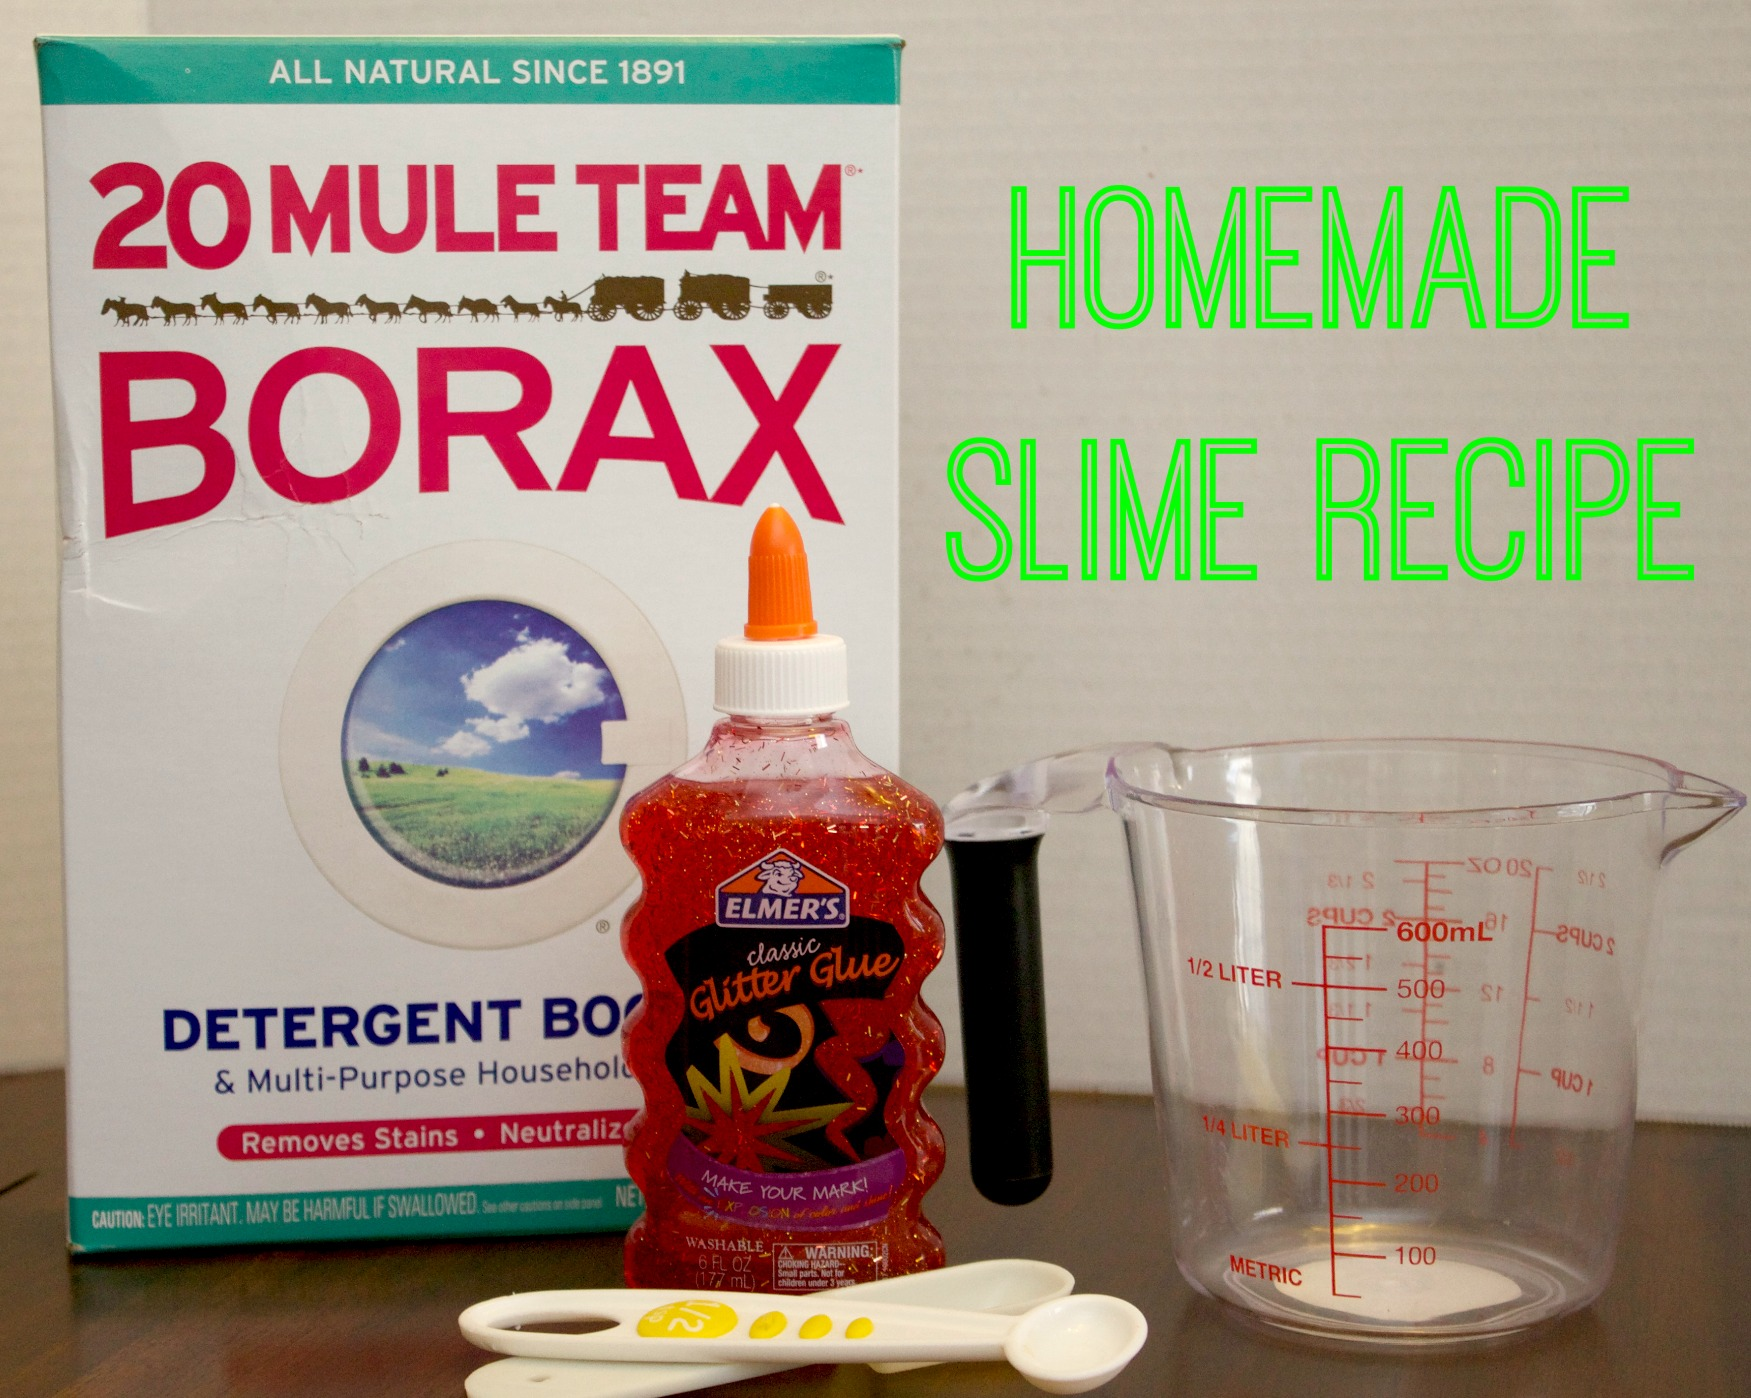 How To Make Slime At Home Using Borax: Easy Slime Recipe